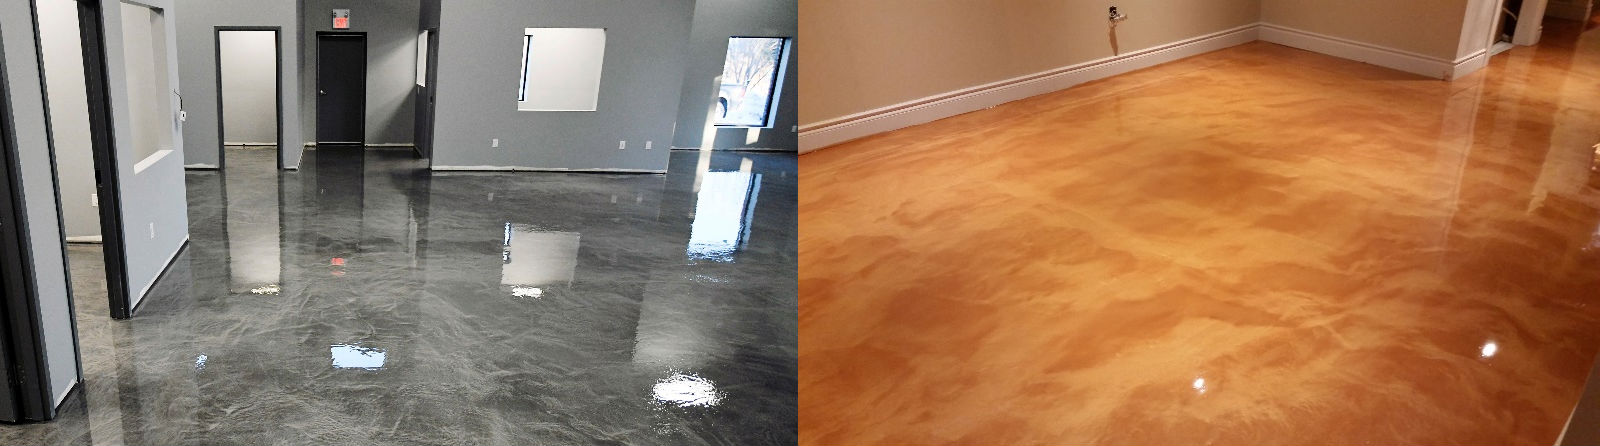 diy epoxy floor metallic installation guide